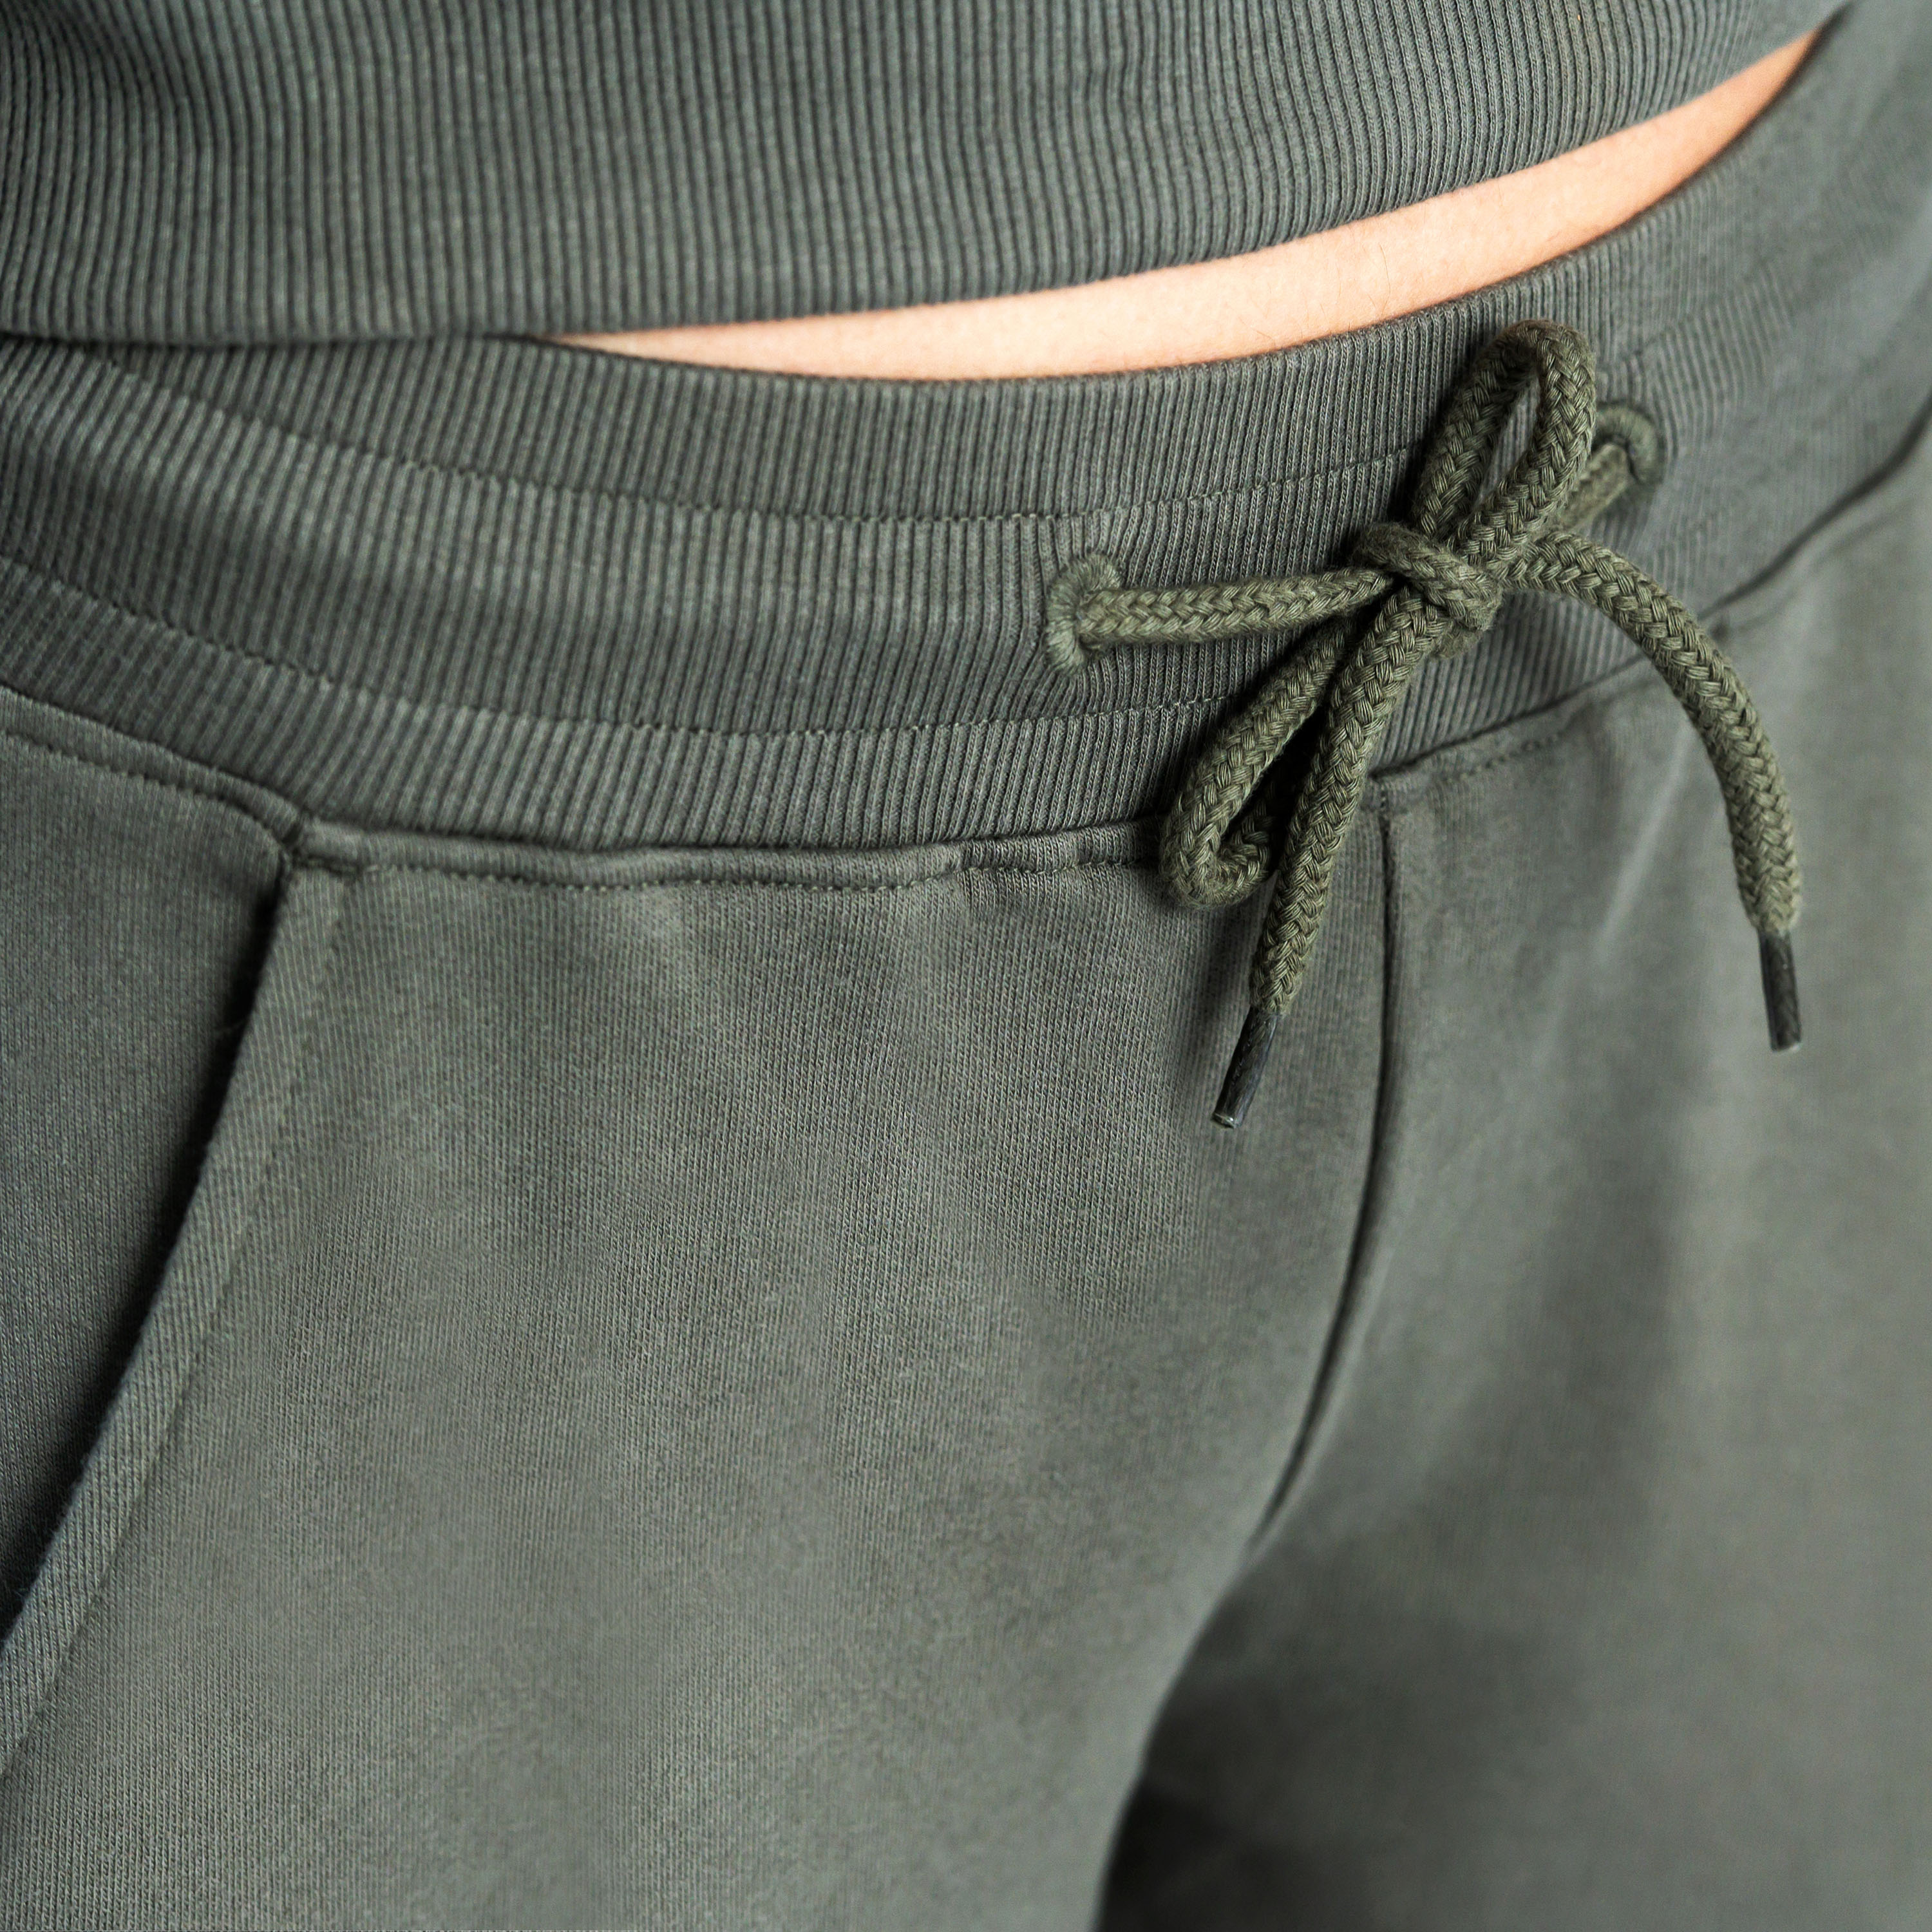 637-40_Lounge-Pant_olive-green_5